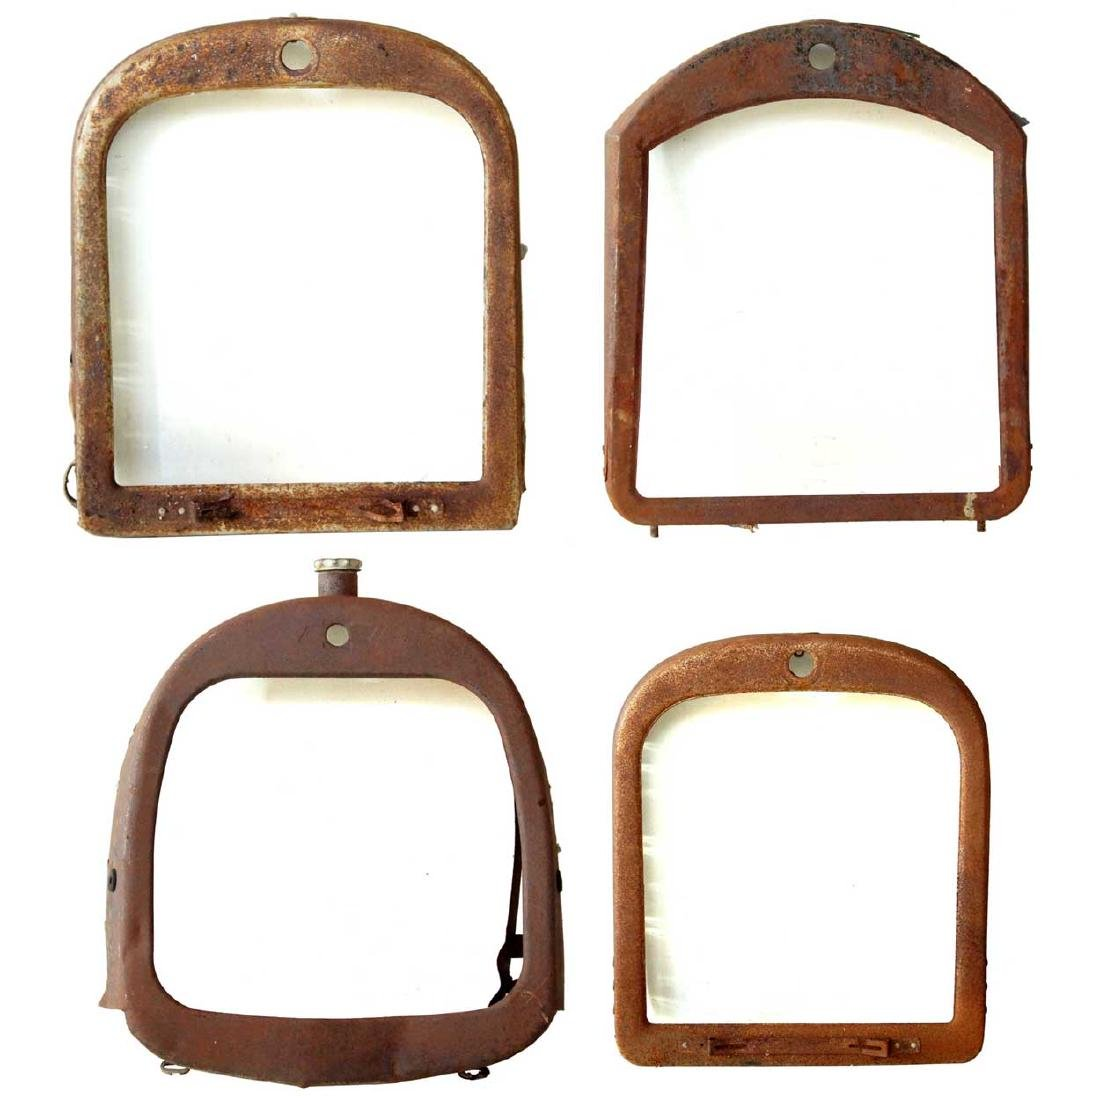 4 Early American Automobile Grille Frames